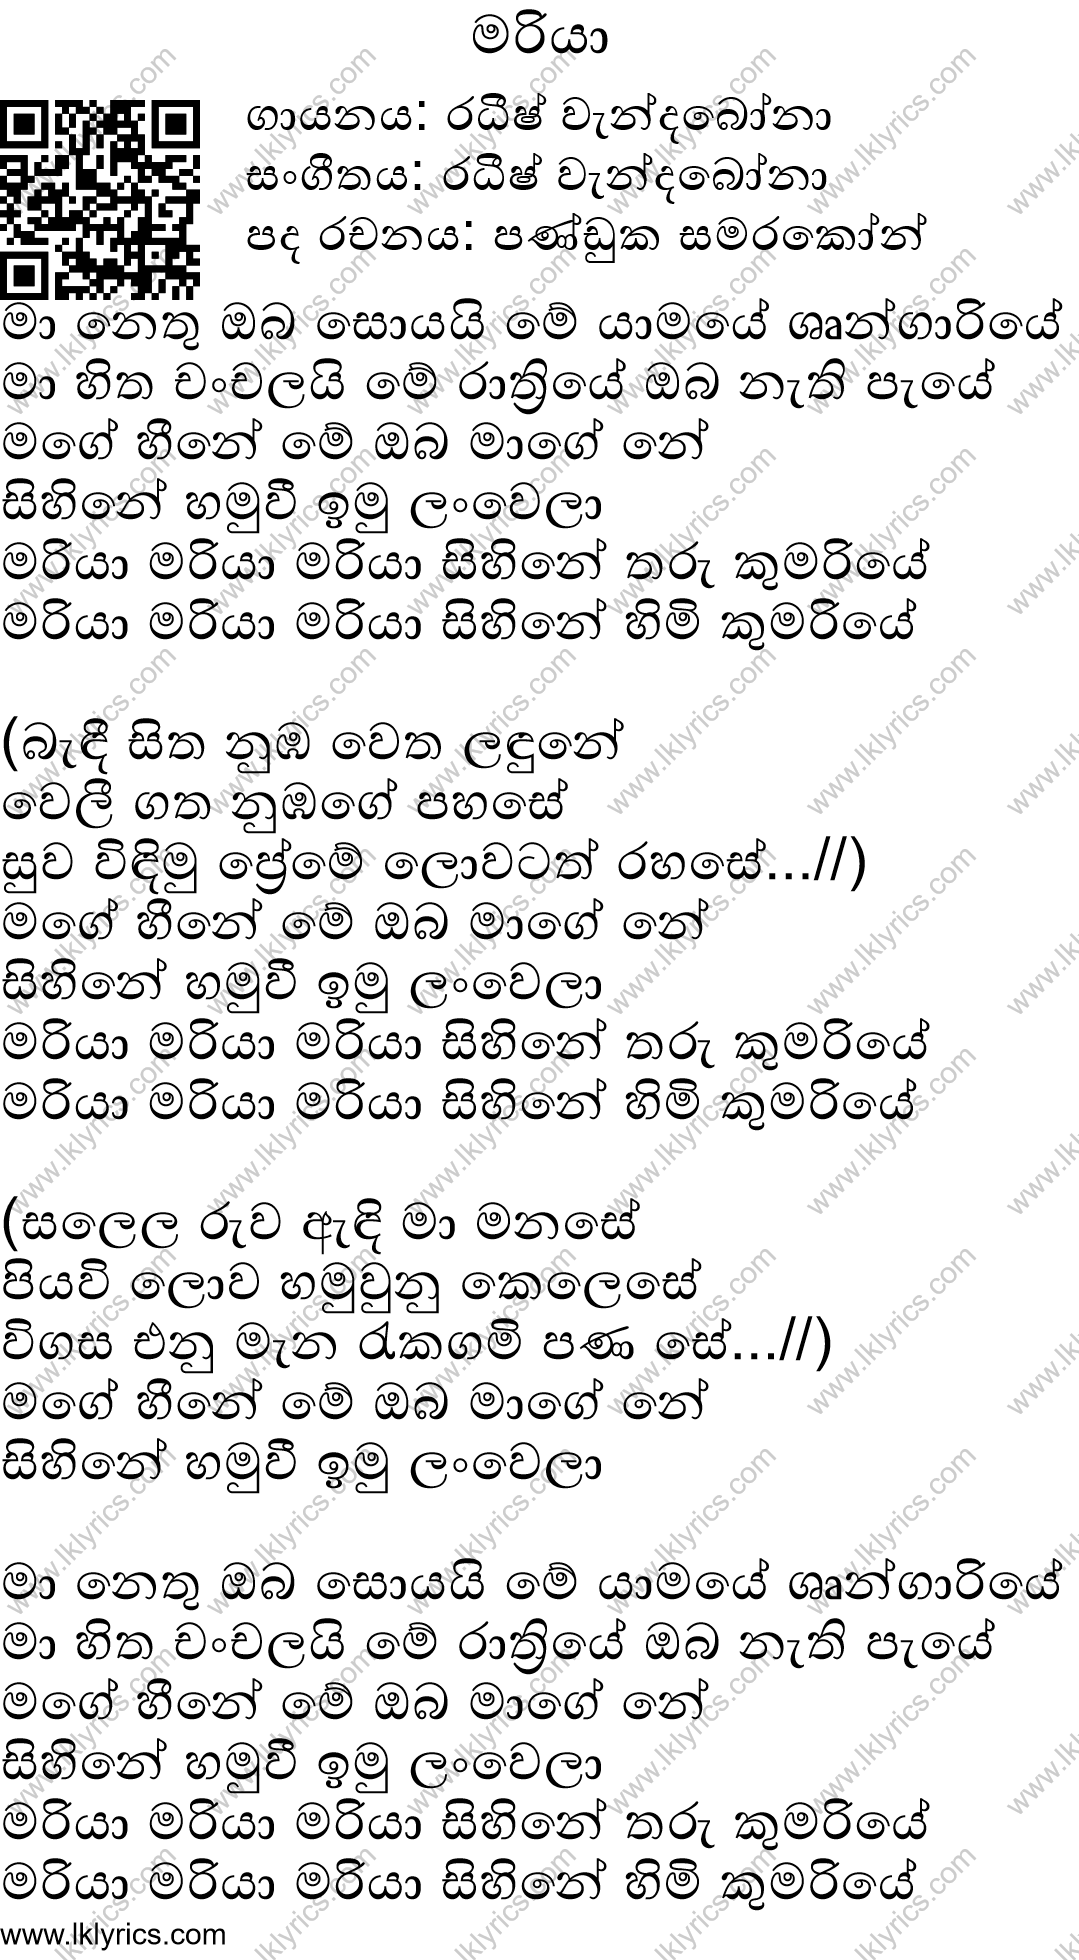 sinhala lyrics download